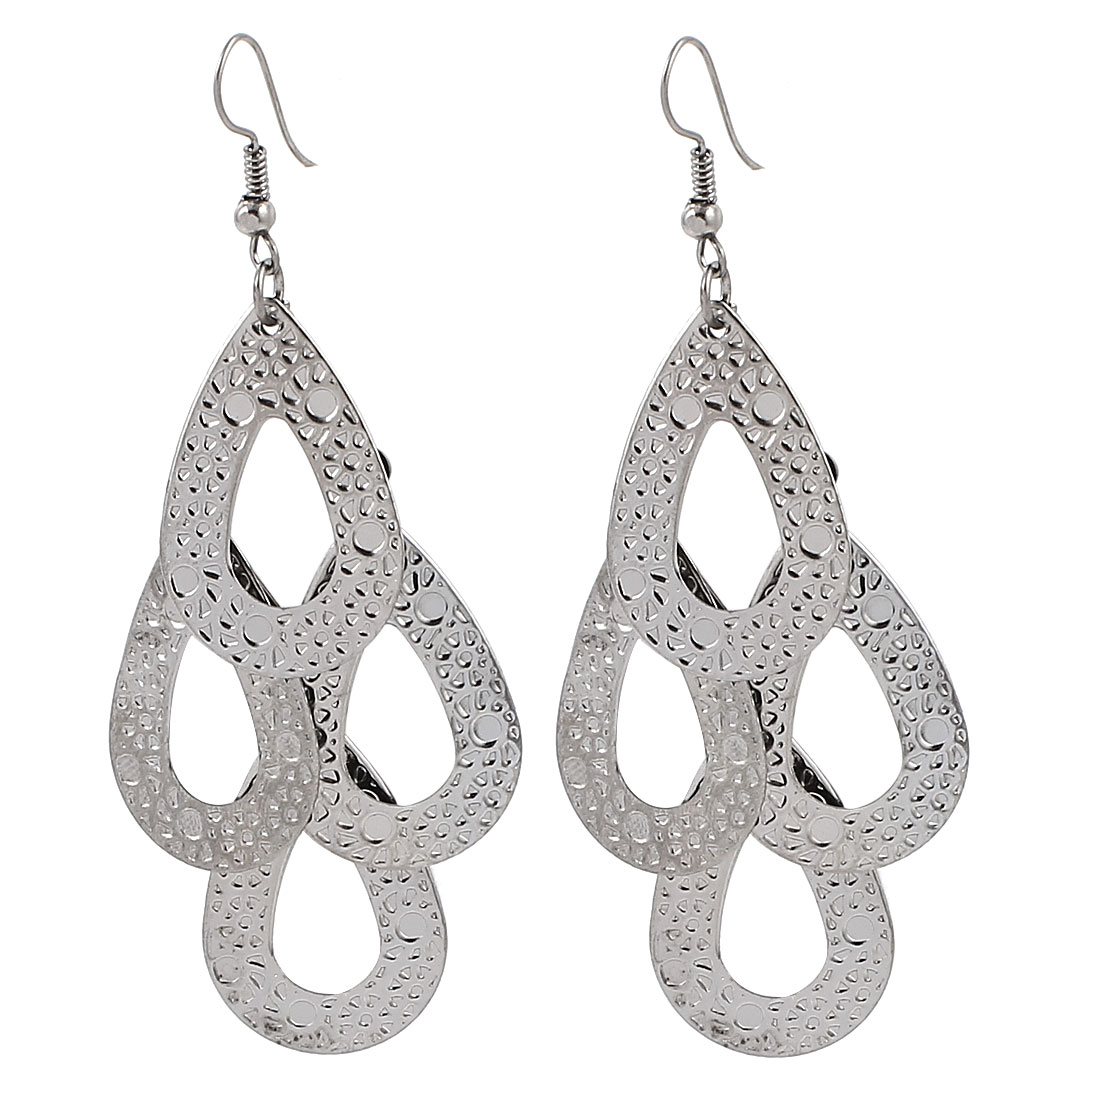 Lady Party Decor Metal Oval Shape Pendant Hook Dangle Earrings Pair Silver Tone